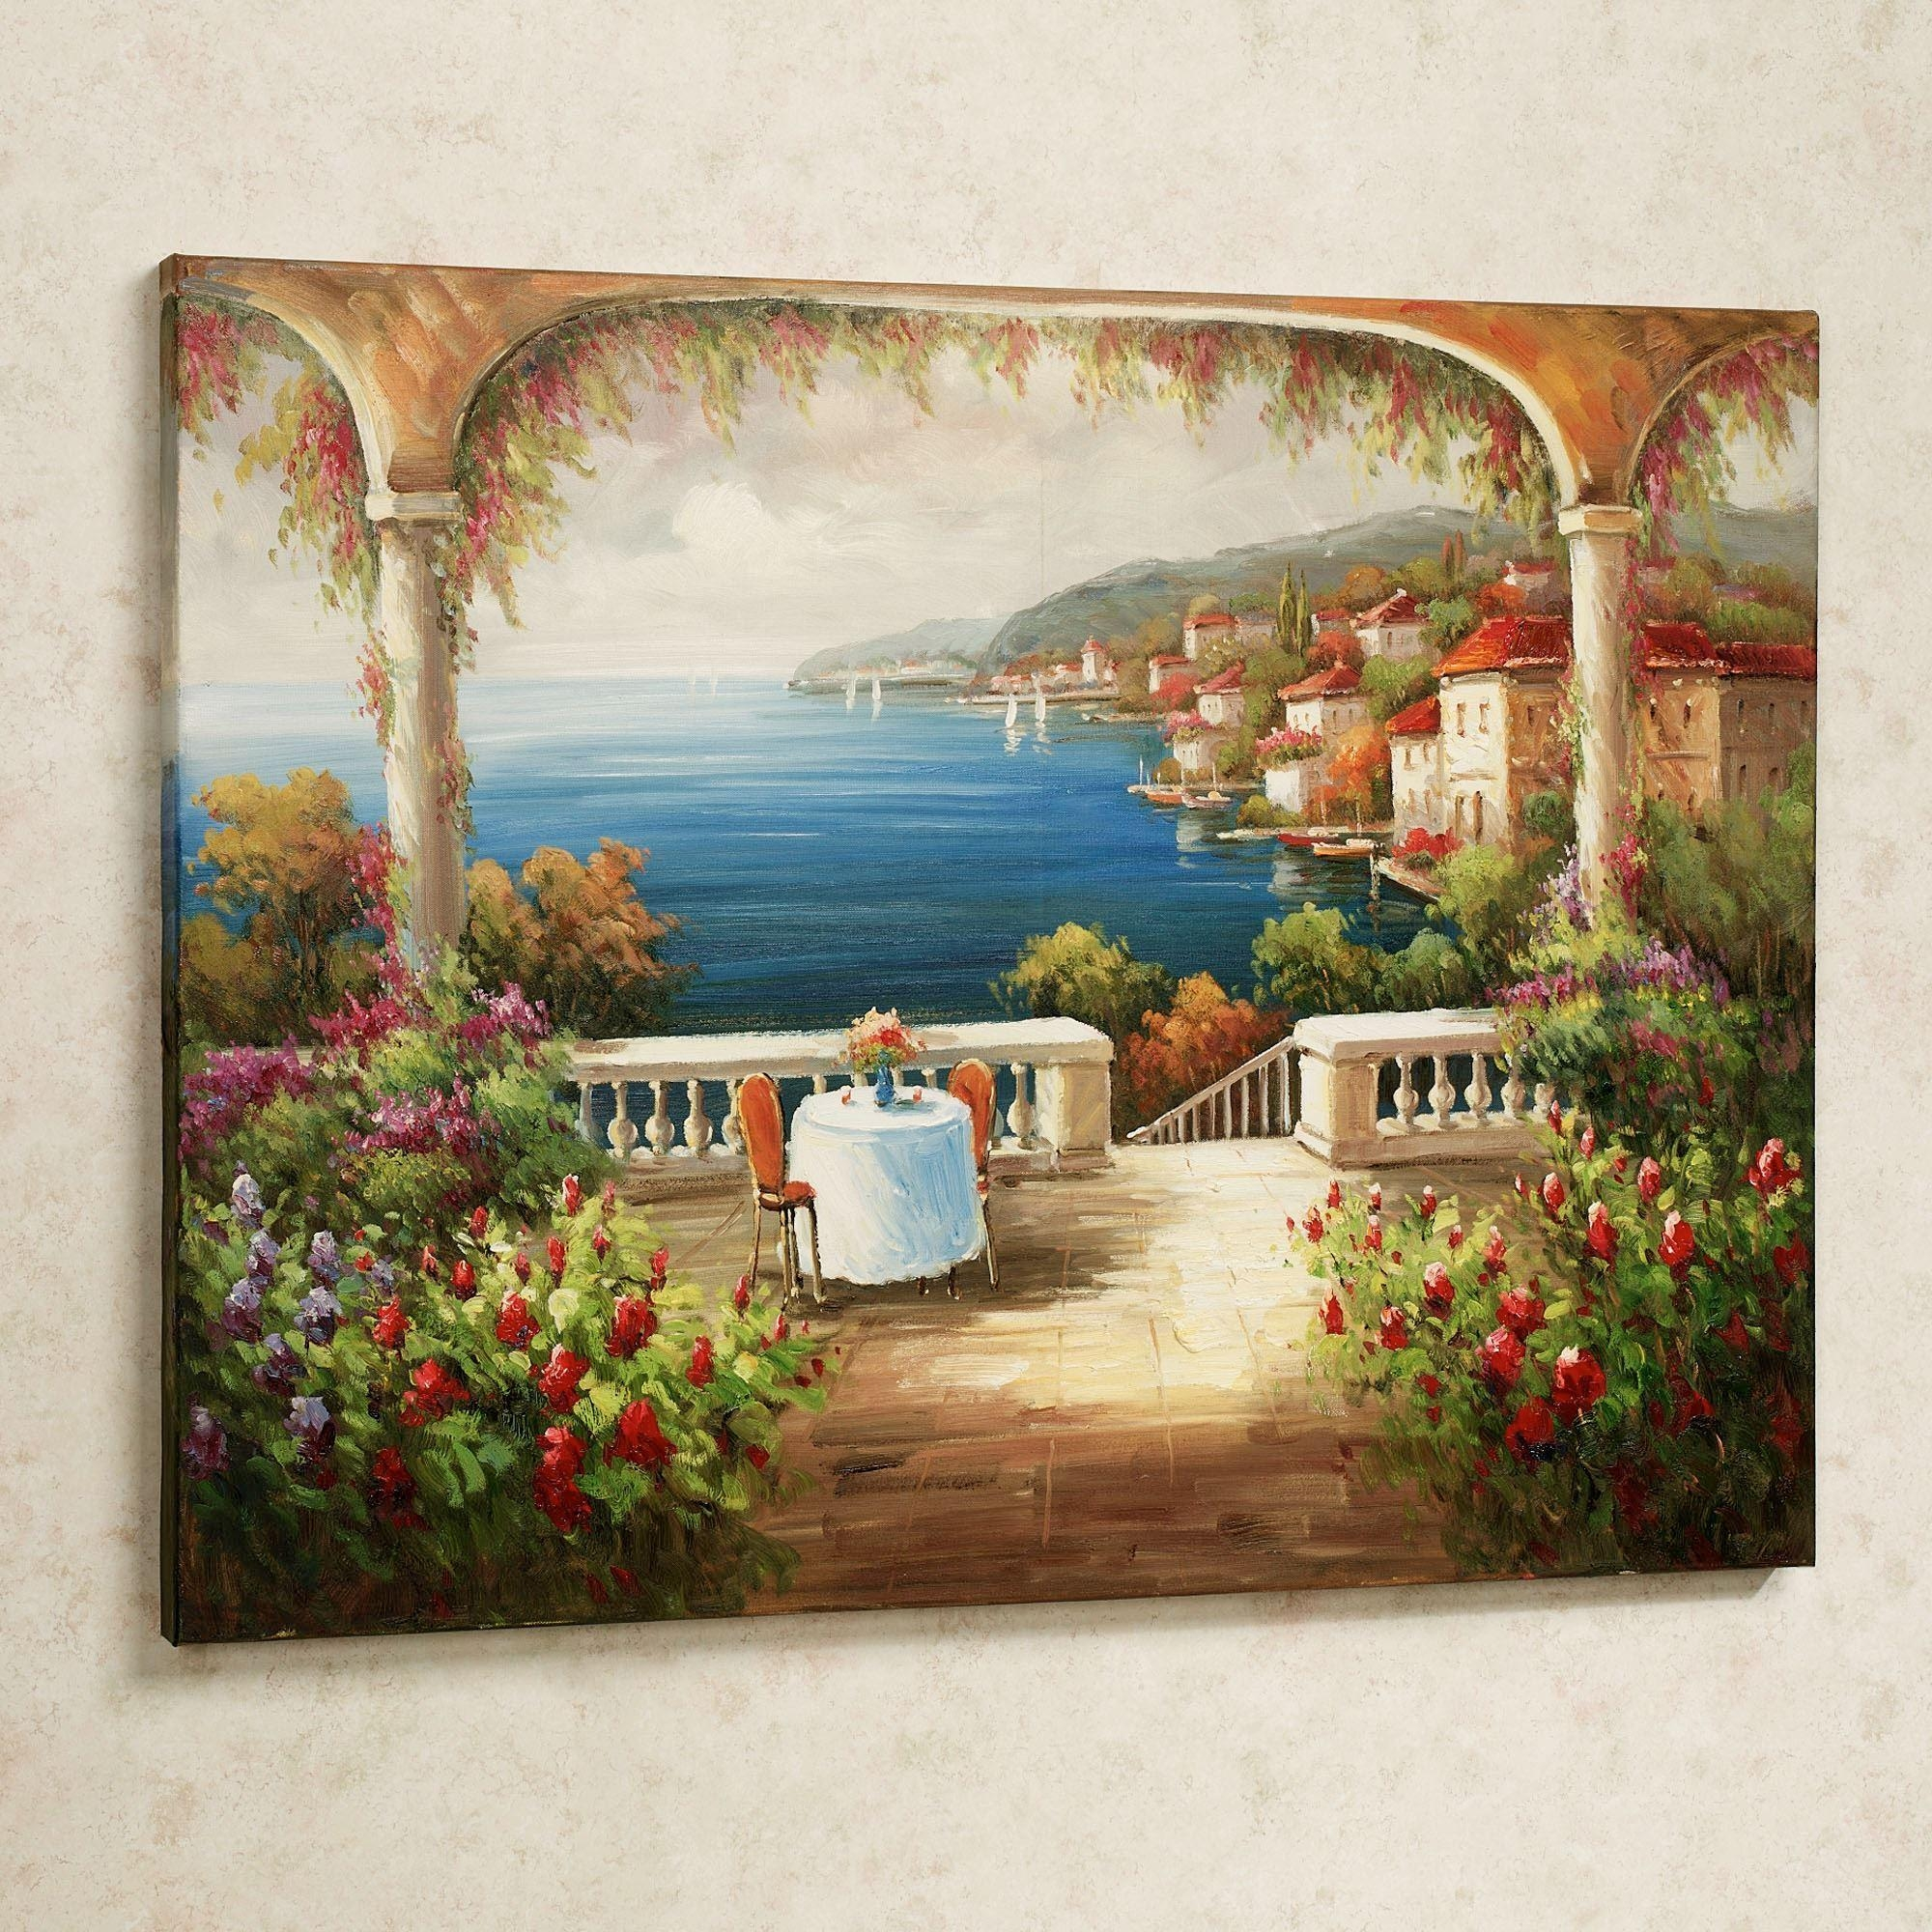 Tuscan Italian Art   Touch Of Class Pertaining To Italian Overlook Framed Wall Art Sets (Image 19 of 20)